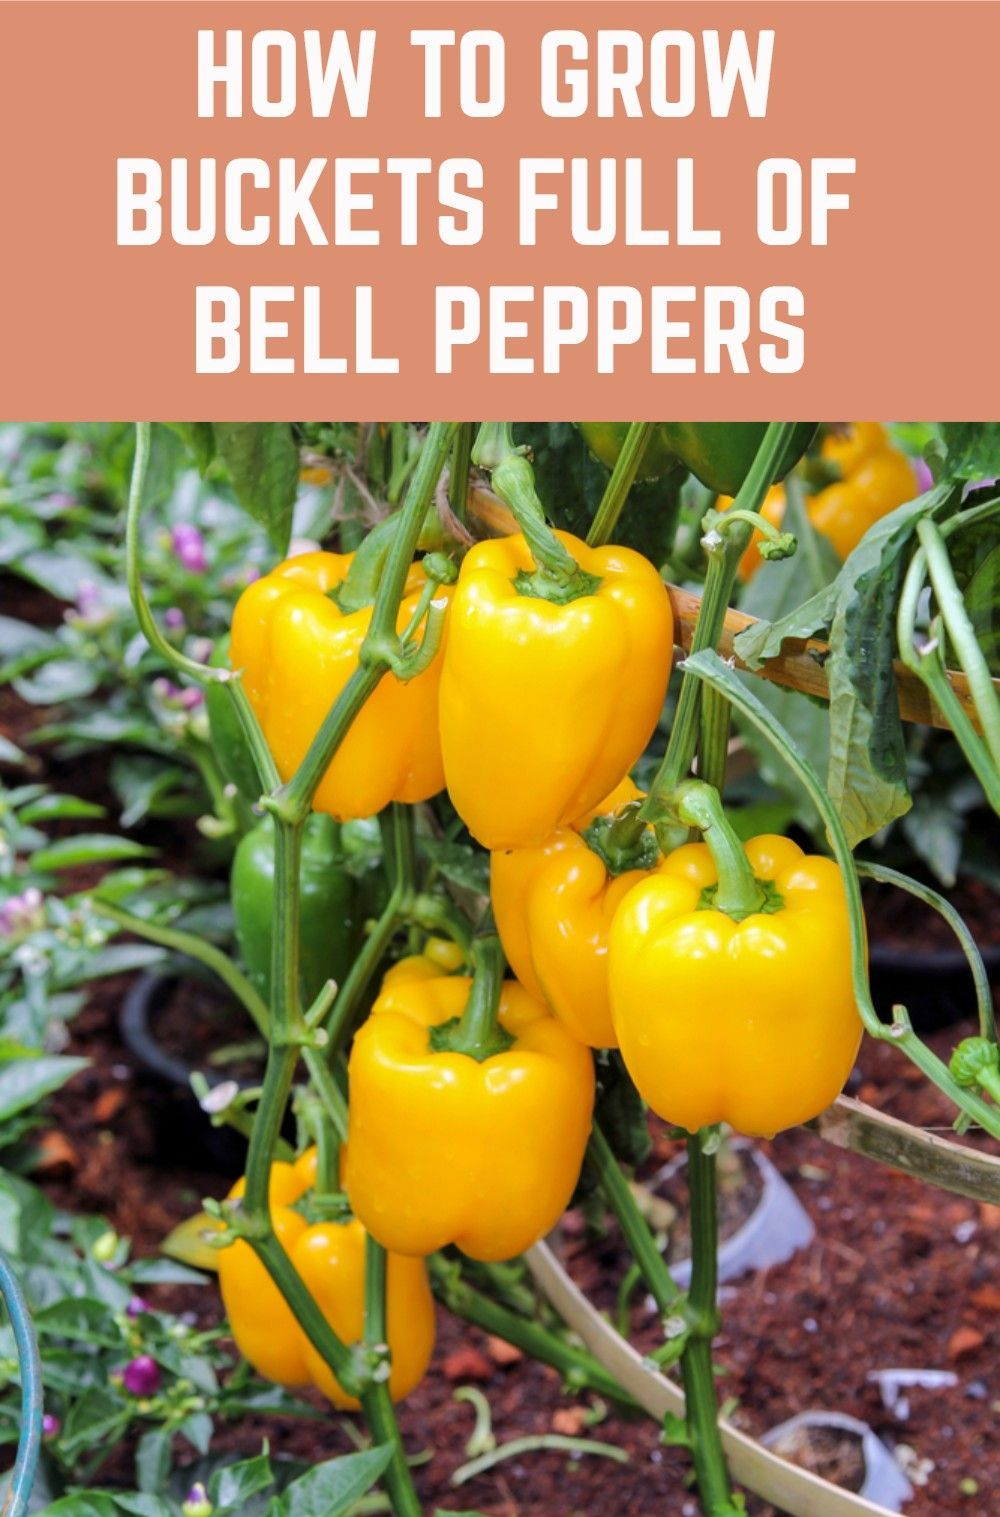 How To Grow Buckets Full Of Bell Peppers + Health Benefits & Recipes